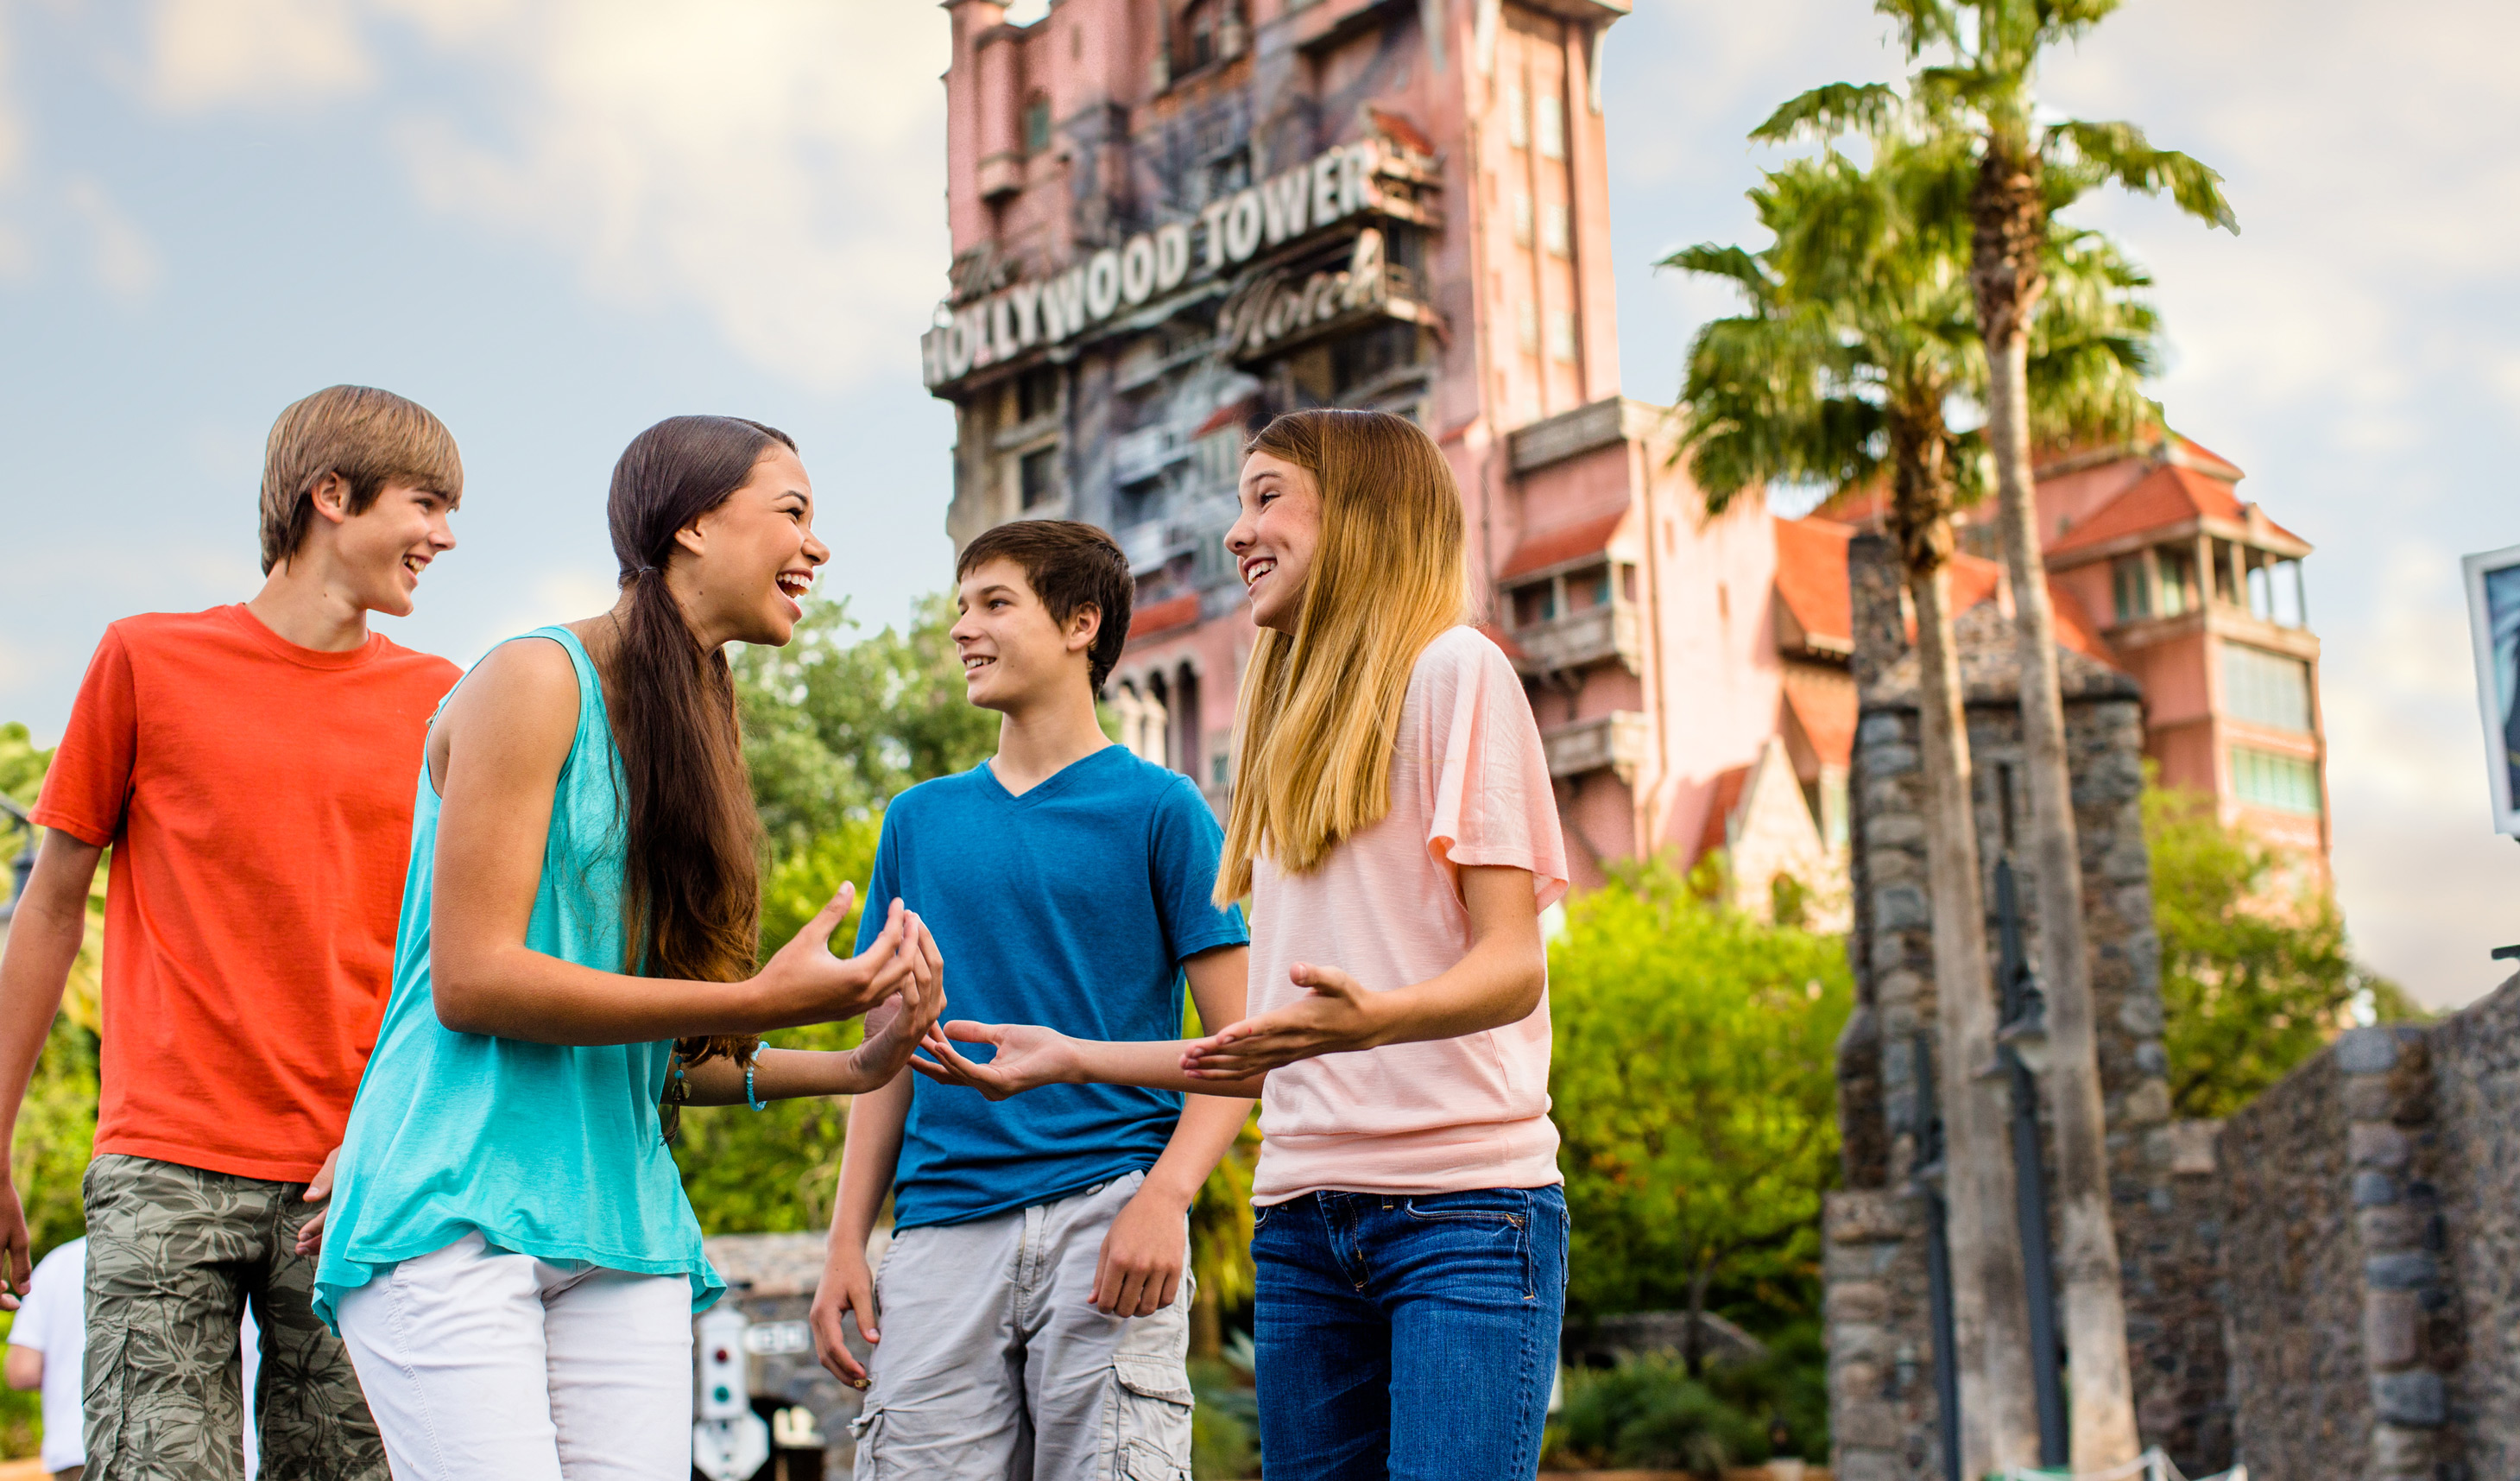 A group of young Guests laugh excitedly with one another outside The Twilight Zone Tower of Terror